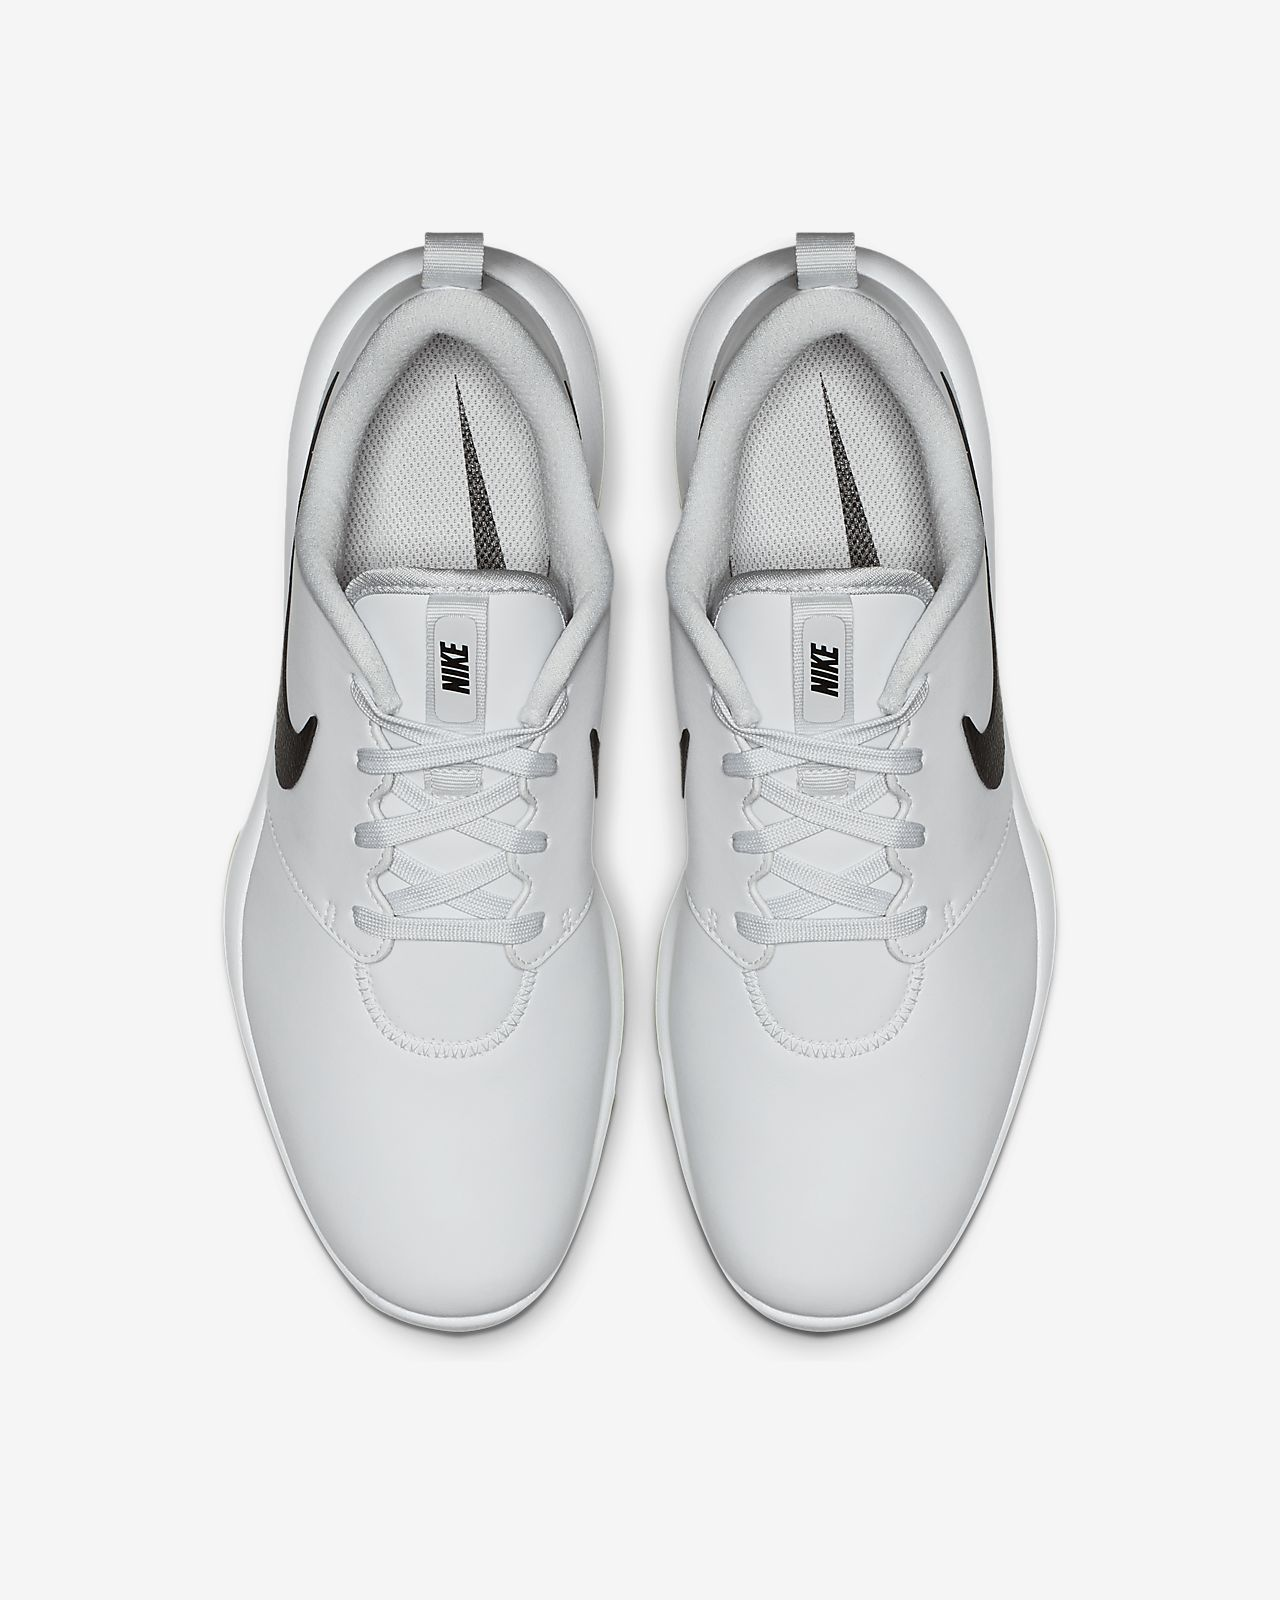 meet 95090 e751b ... Nike Roshe G Tour Men s Golf Shoe